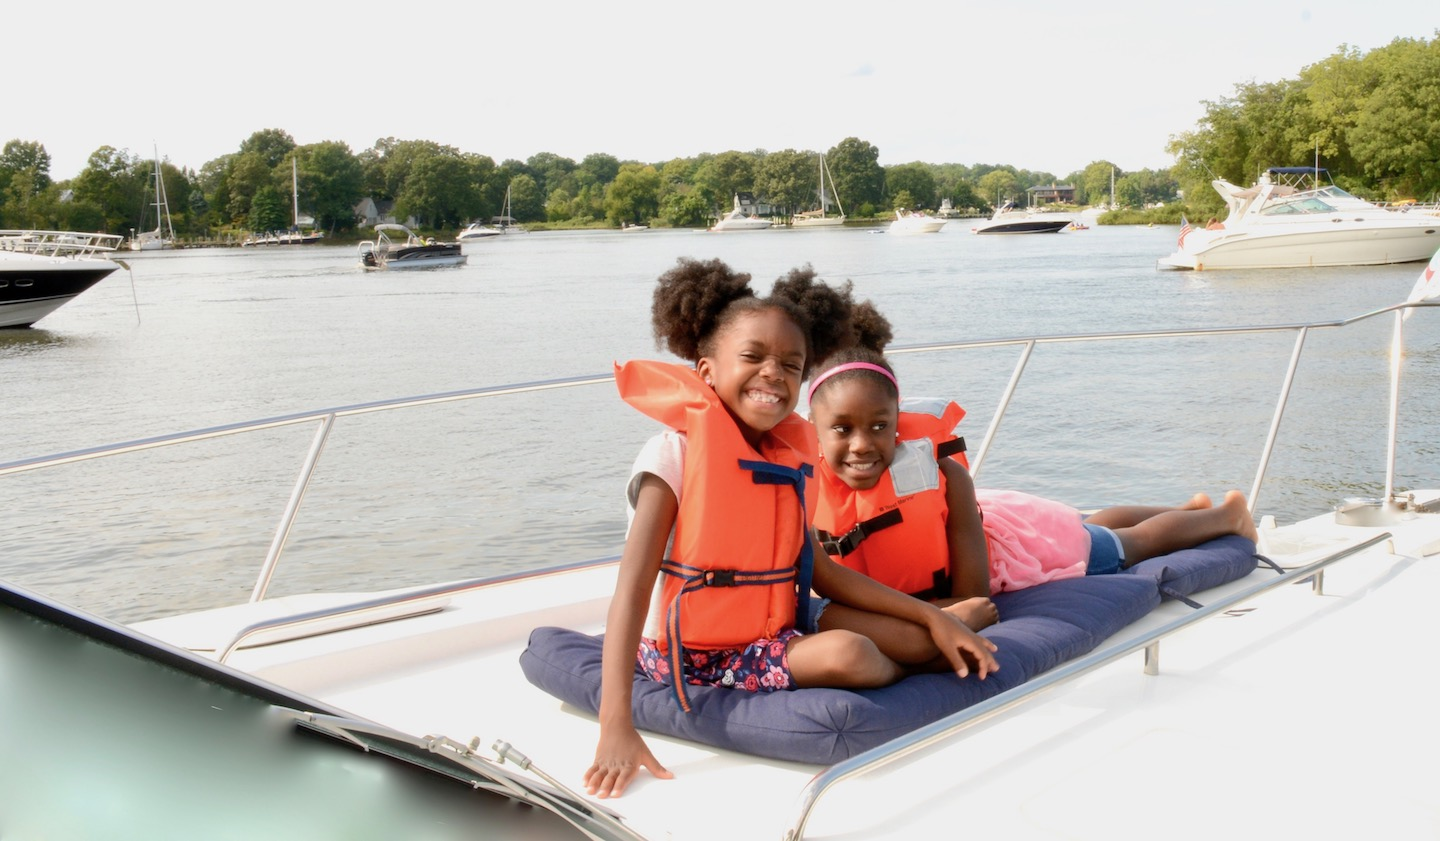 Powerboat Charter Chesapeake Bay, Annapolis MD family friendly